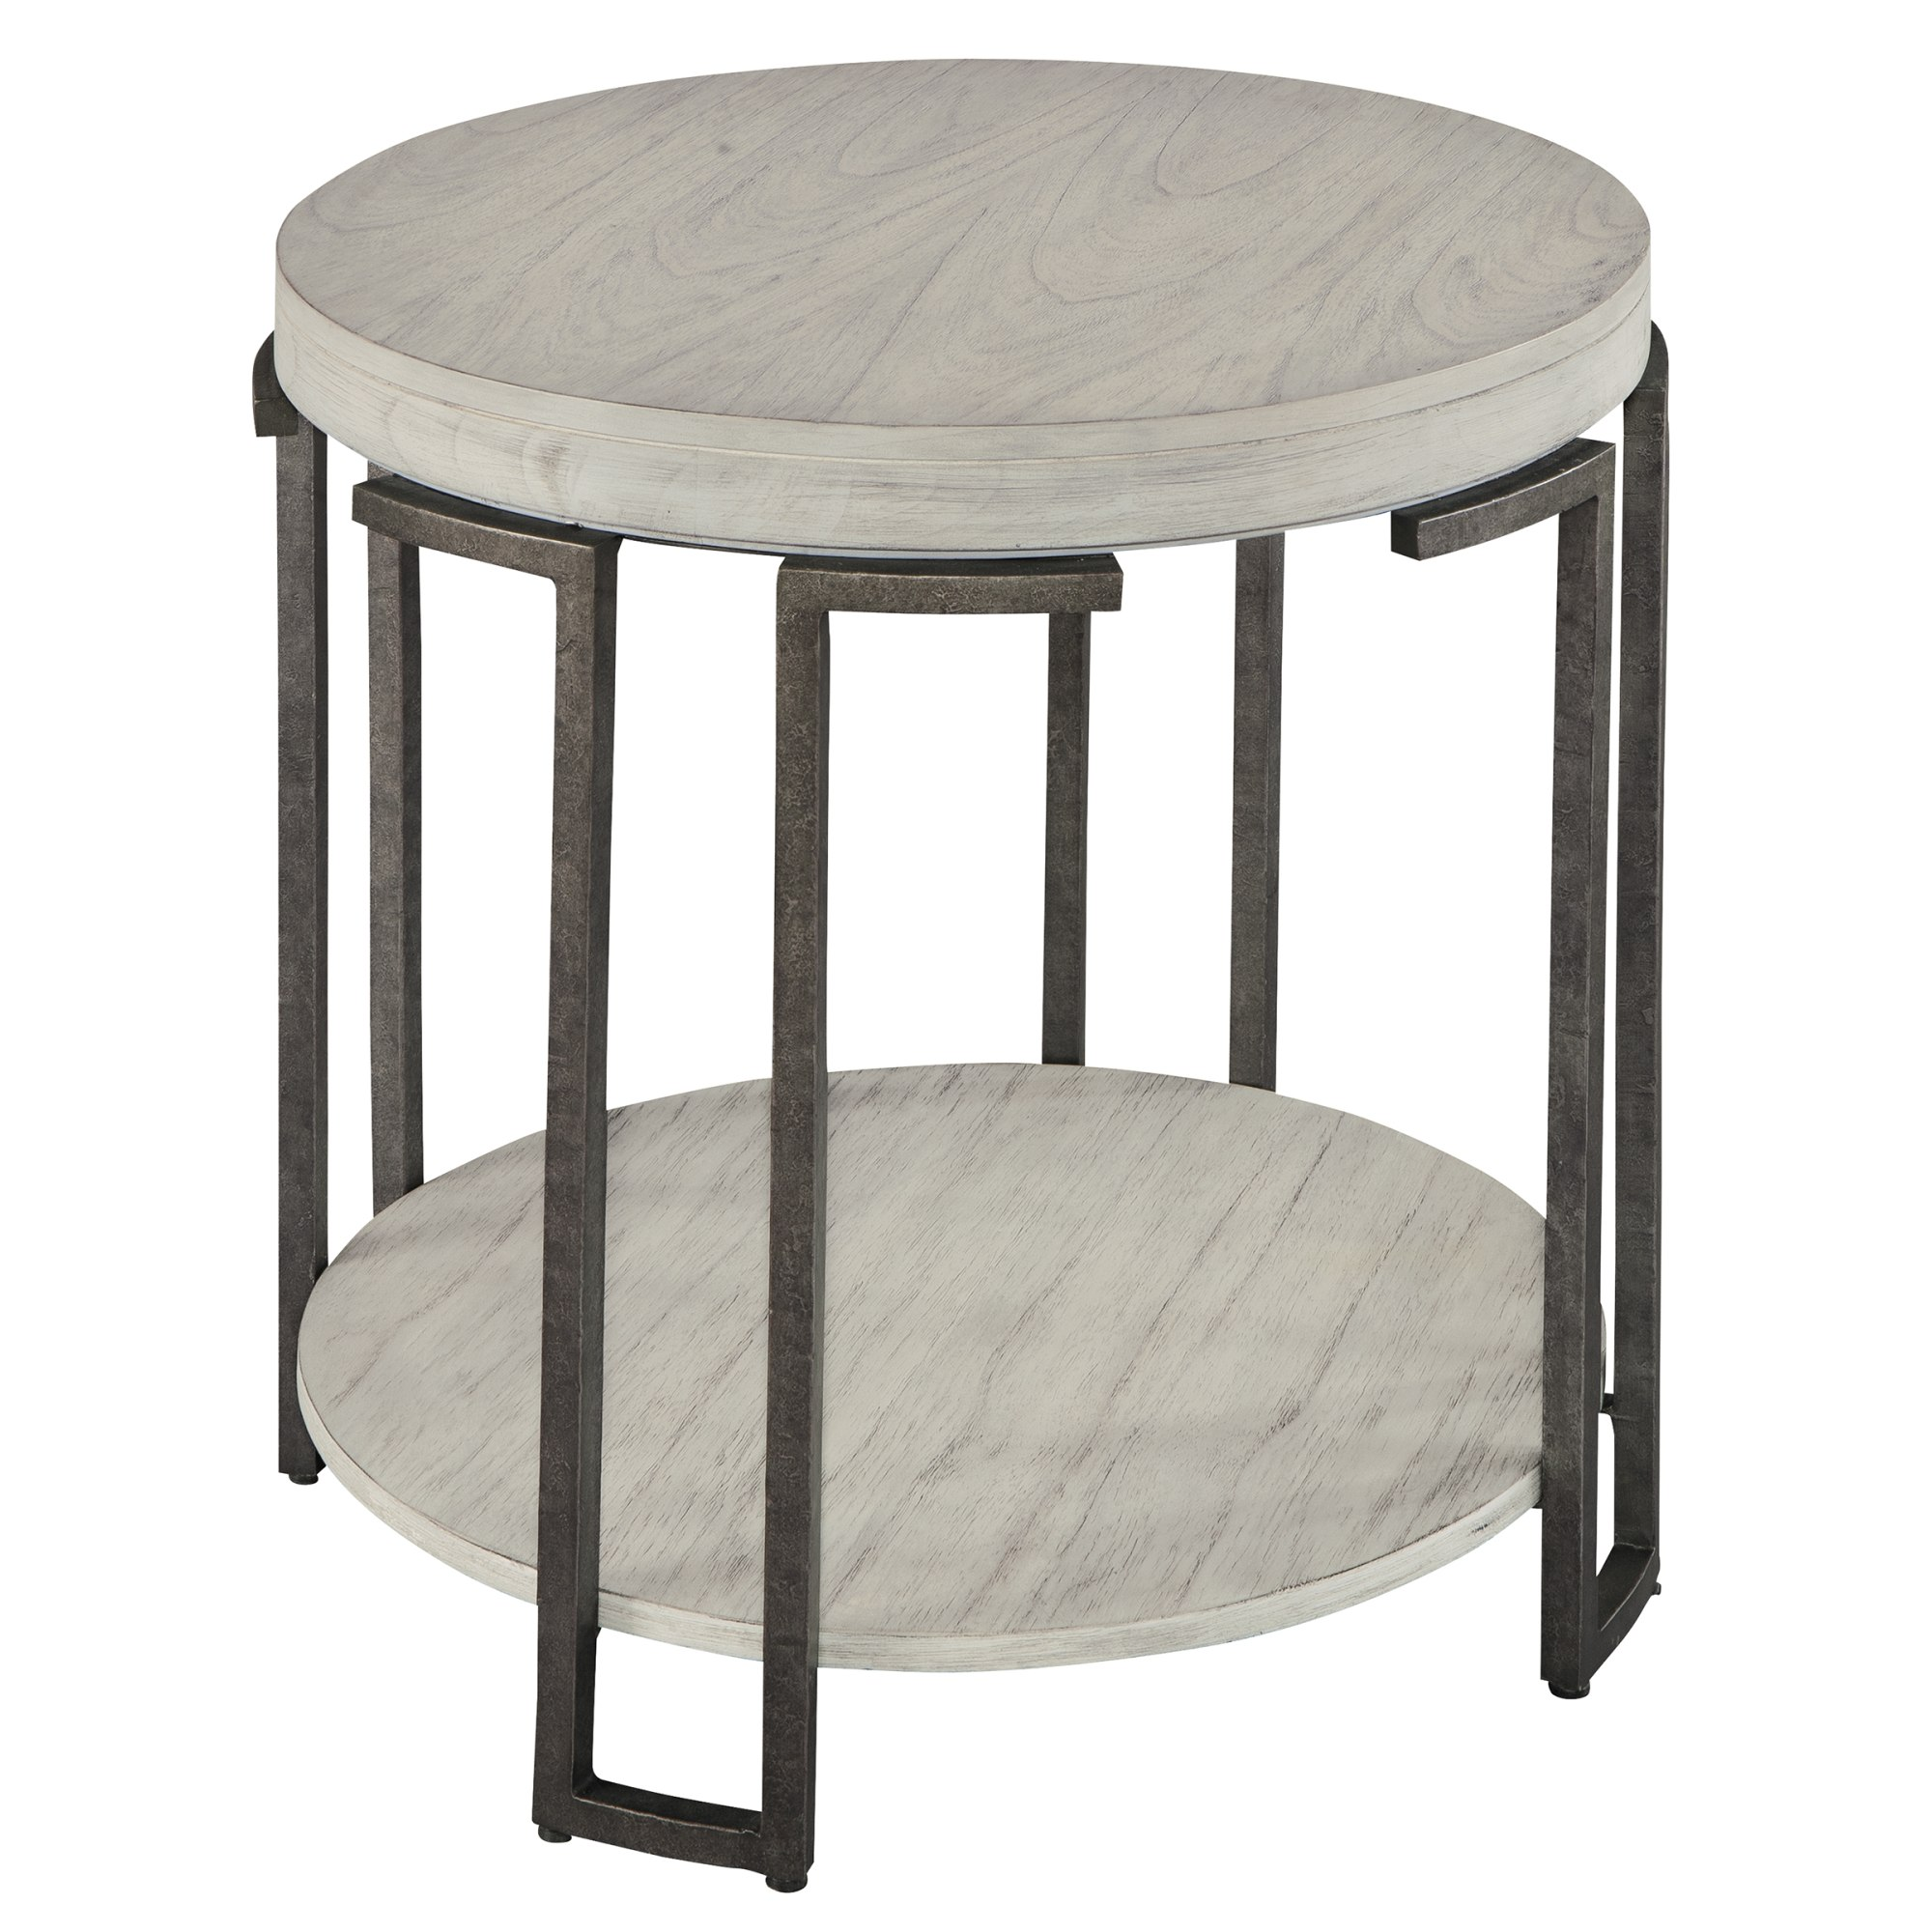 Image for 2-4104 Sierra Heights Round End Table from Hekman Official Website